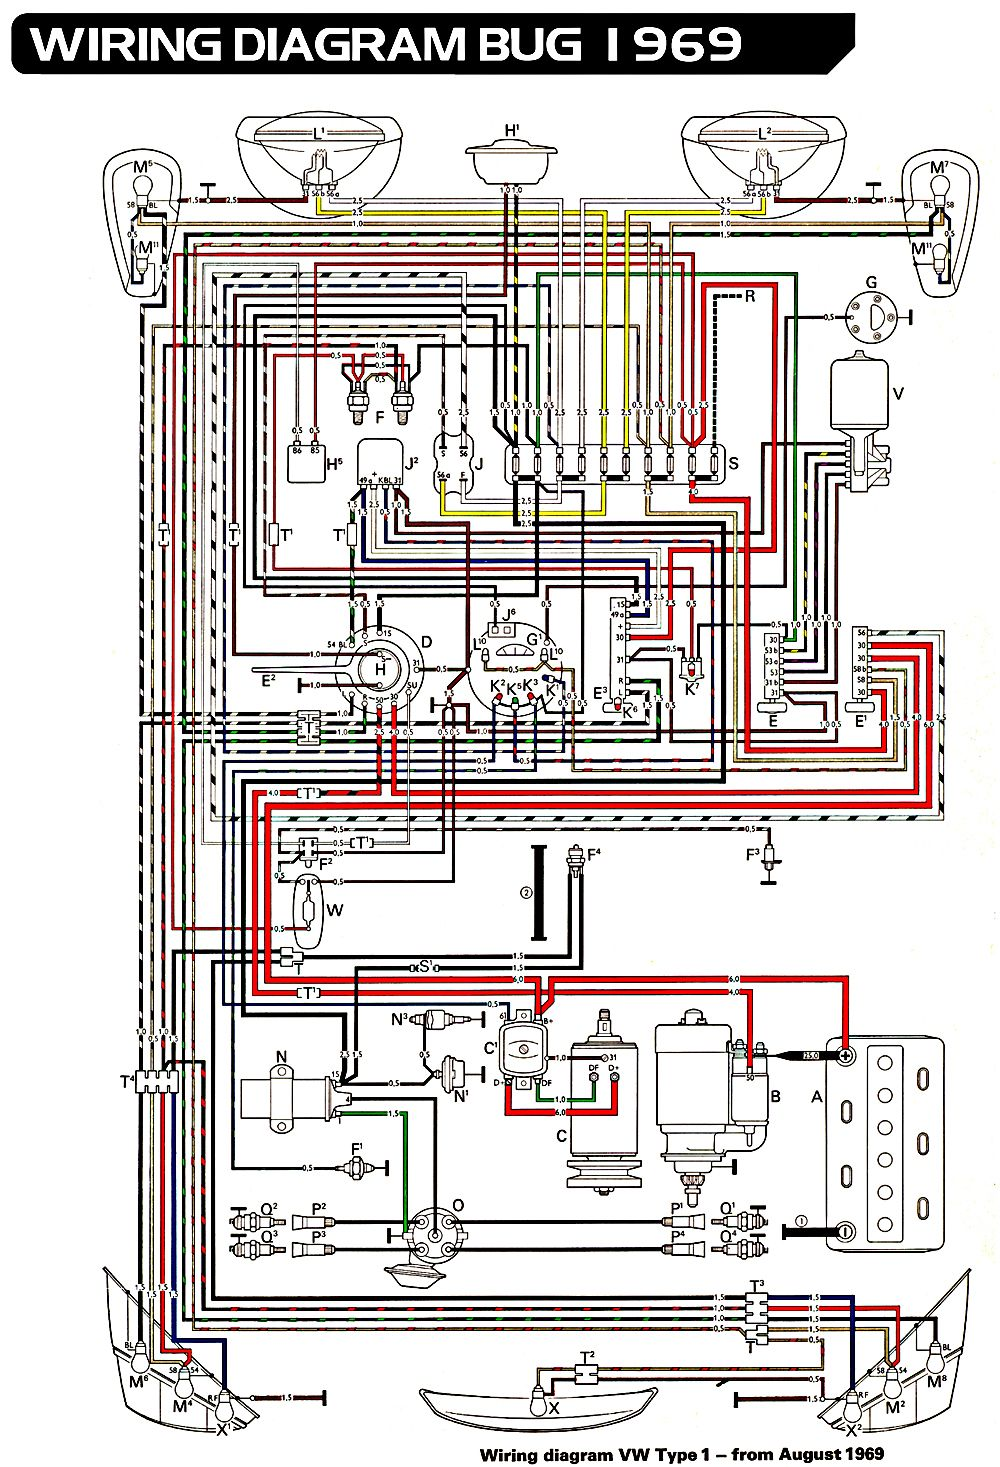 6d75c15875479254f26a32a8499d9044 vw type 1 wiring diagram 1961 vw type 1 wiring diagram \u2022 wiring vw type 3 wiring harness at virtualis.co